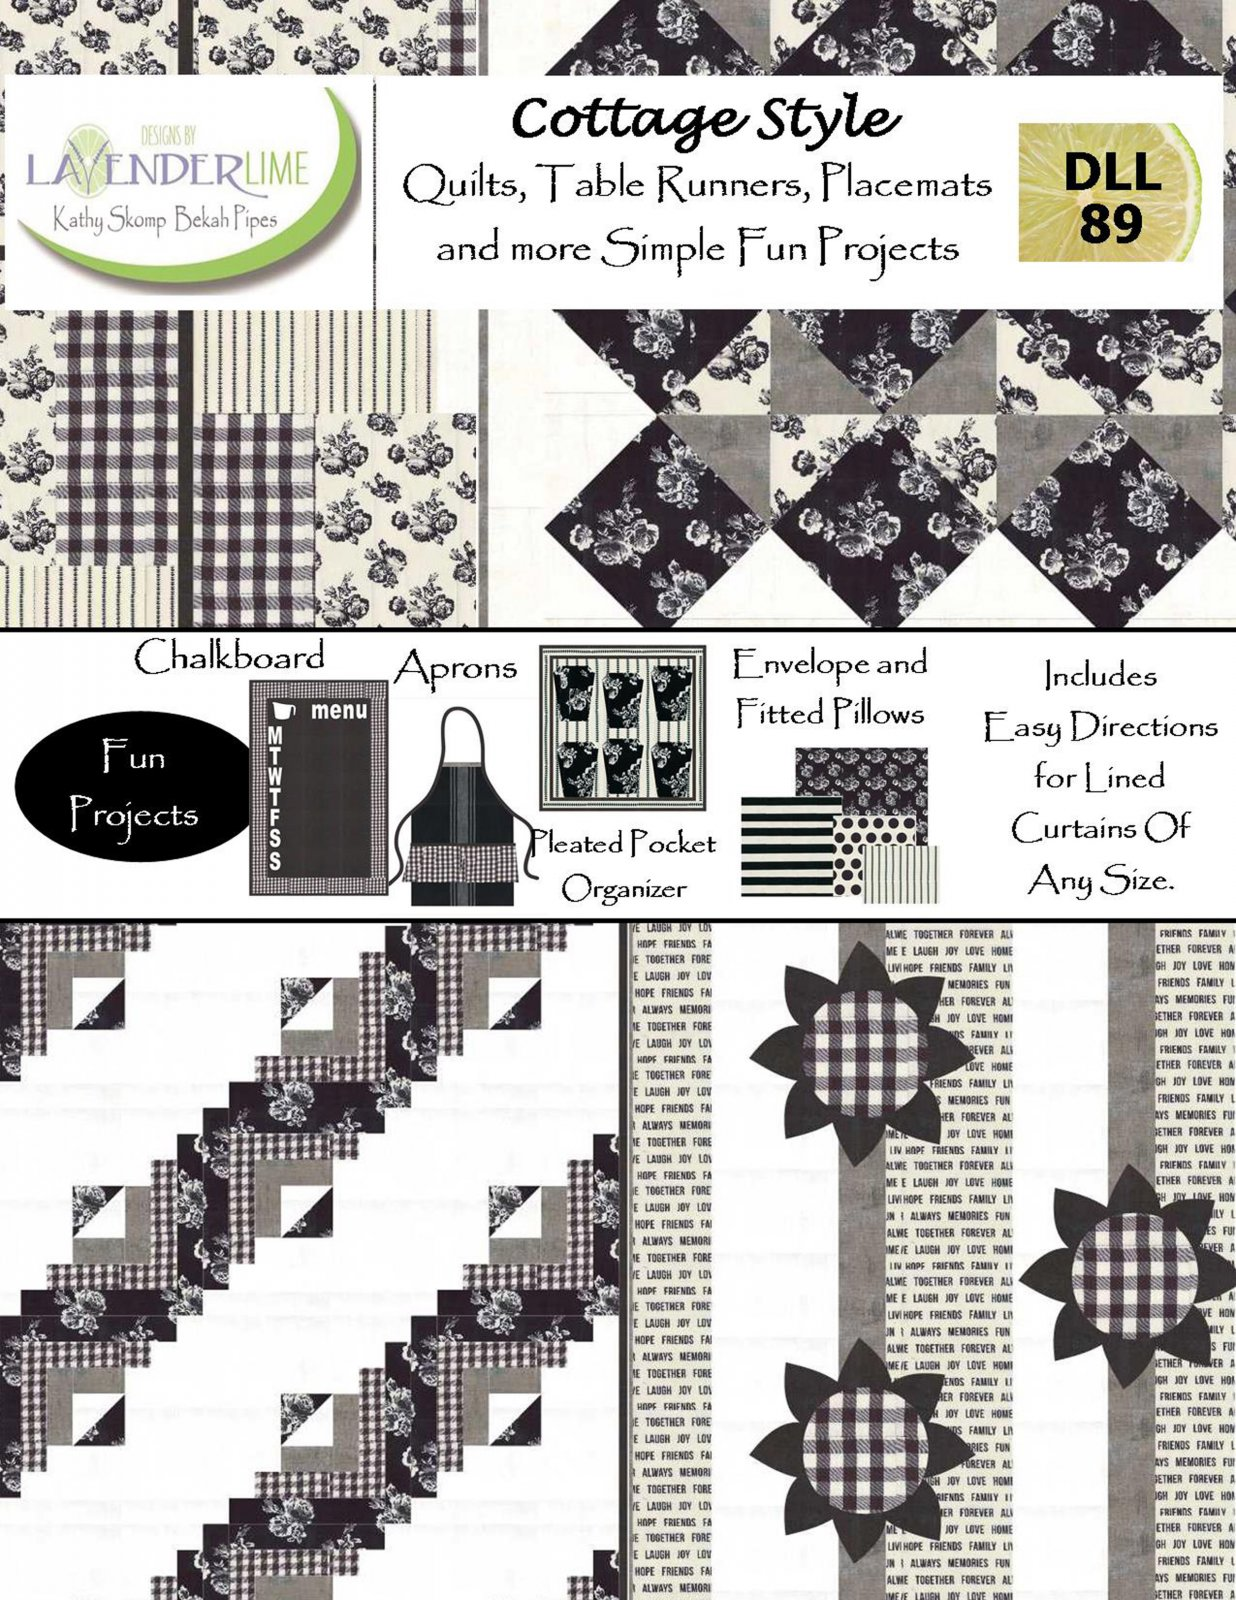 Cottage Style PDF Download